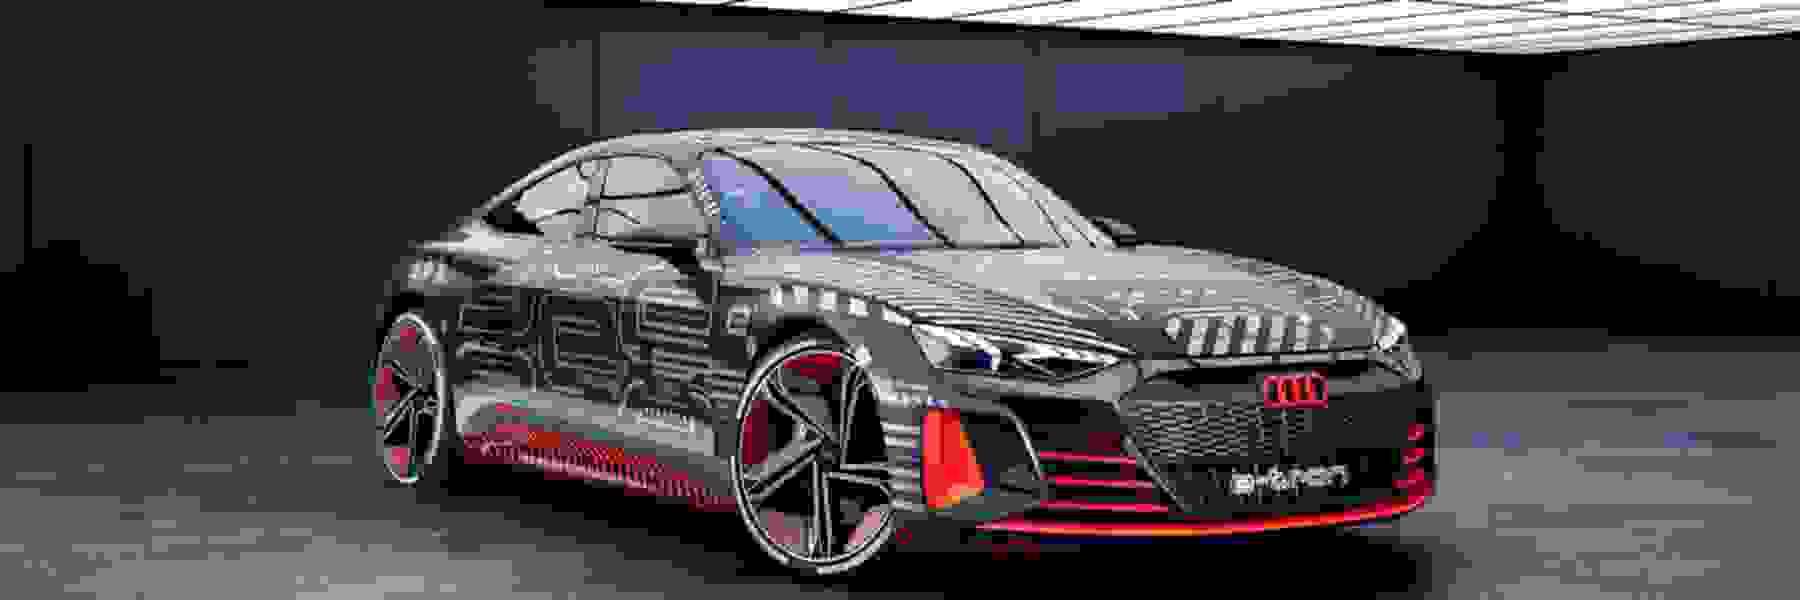 2021 A Great Year in the Making: Audi e-tron GT Prototype